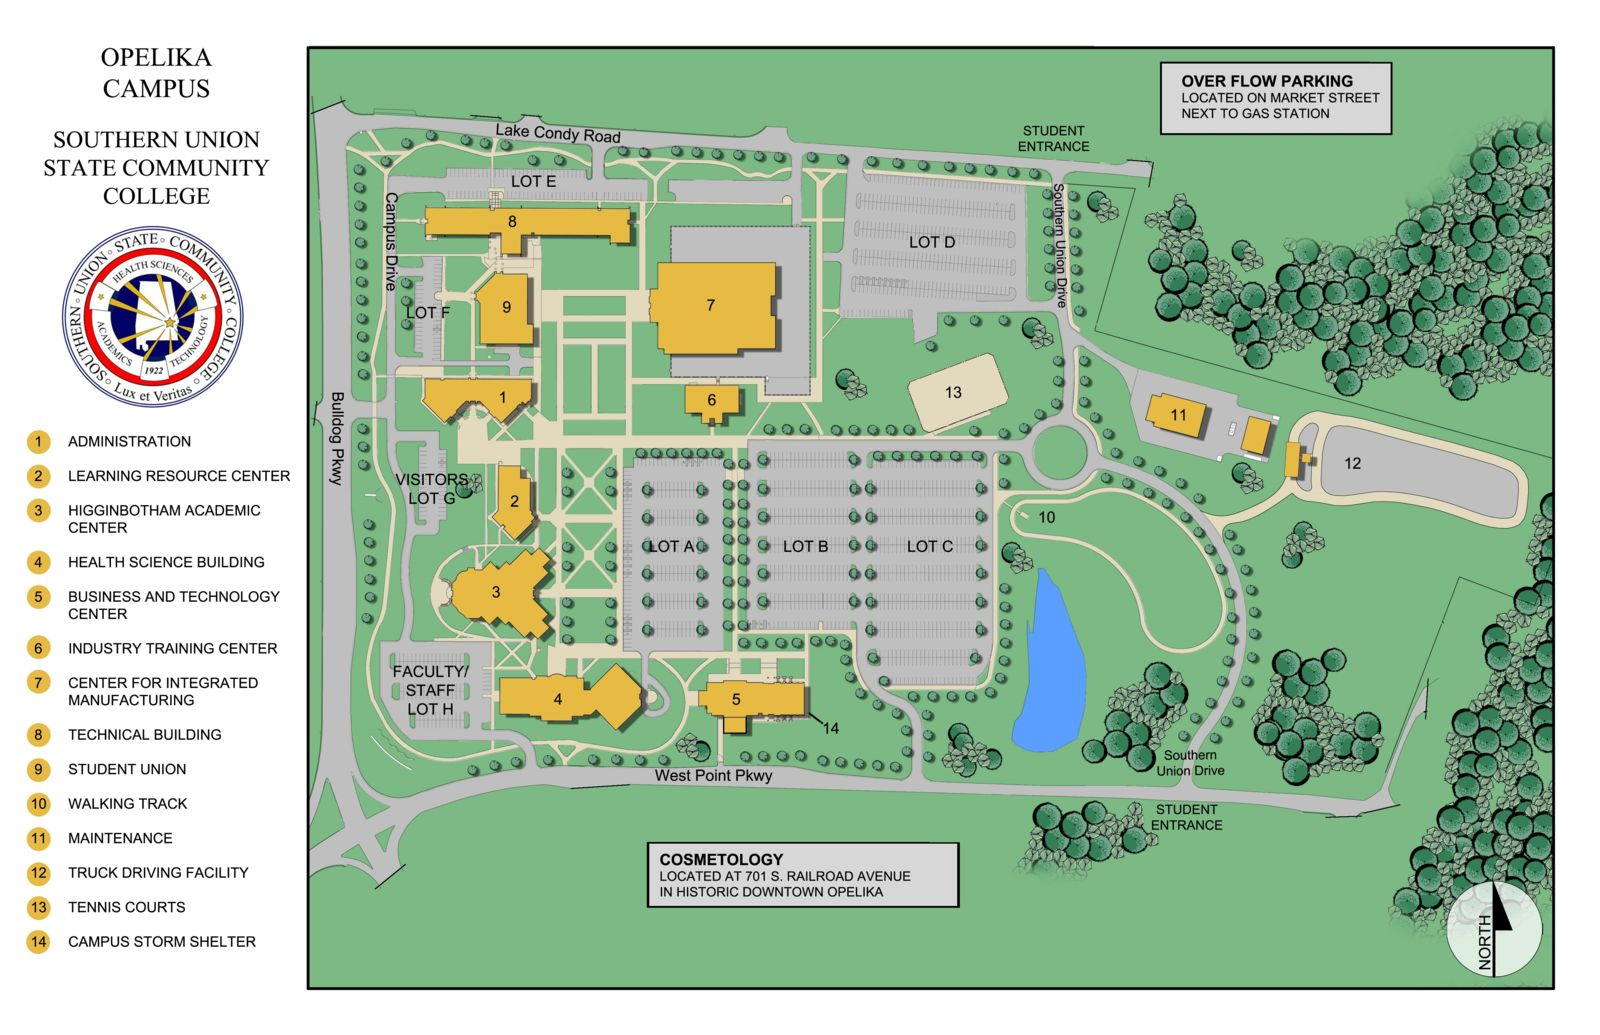 southern union opelika campus map Campus Maps Parking southern union opelika campus map